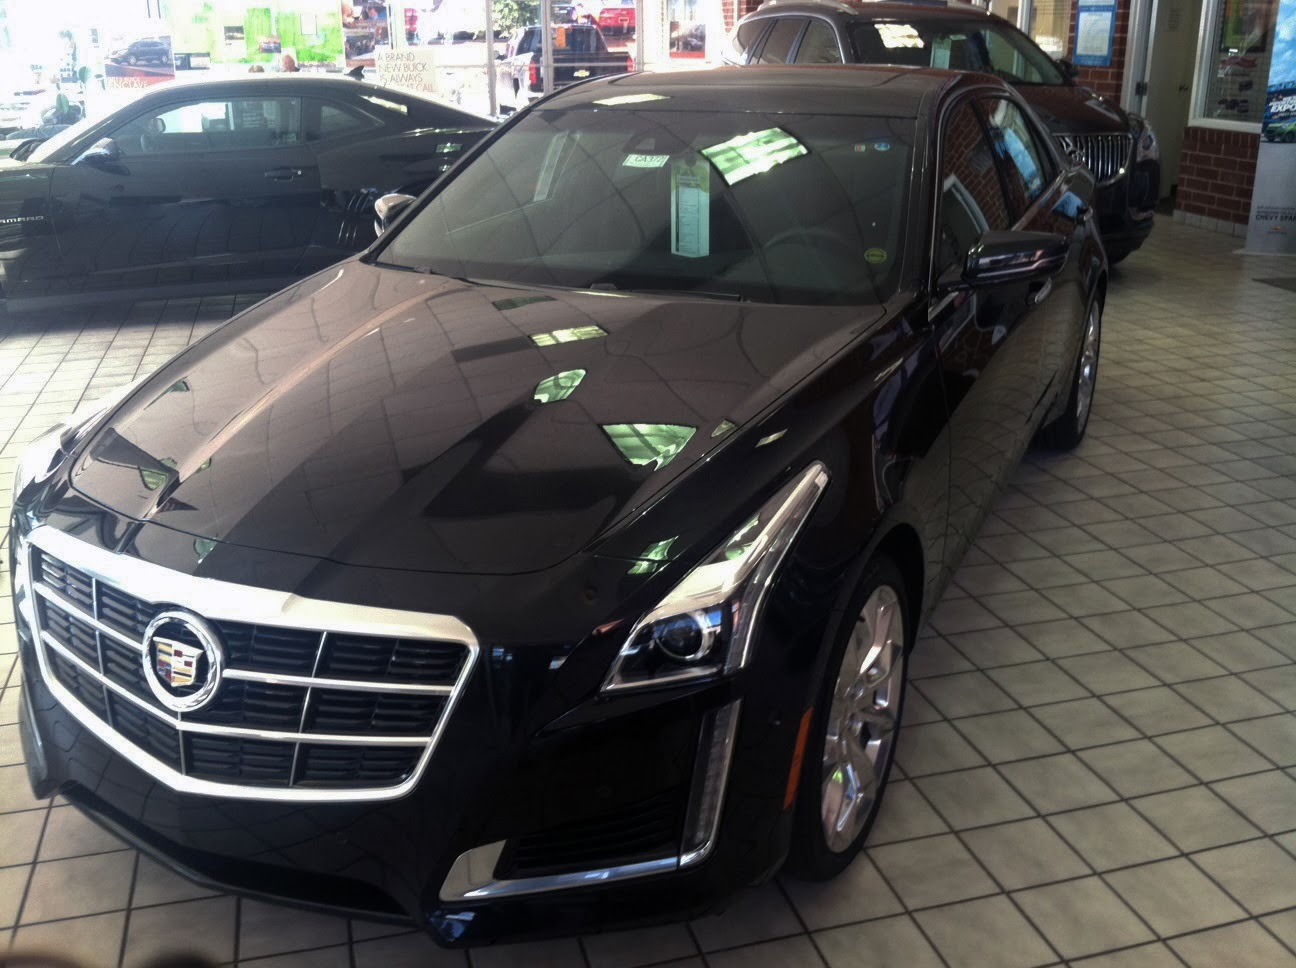 Randy Marion Mooresville >> The Randy Marion Automotive Group: The 2014 Cadillac CTS Has Arrived in Mooresville